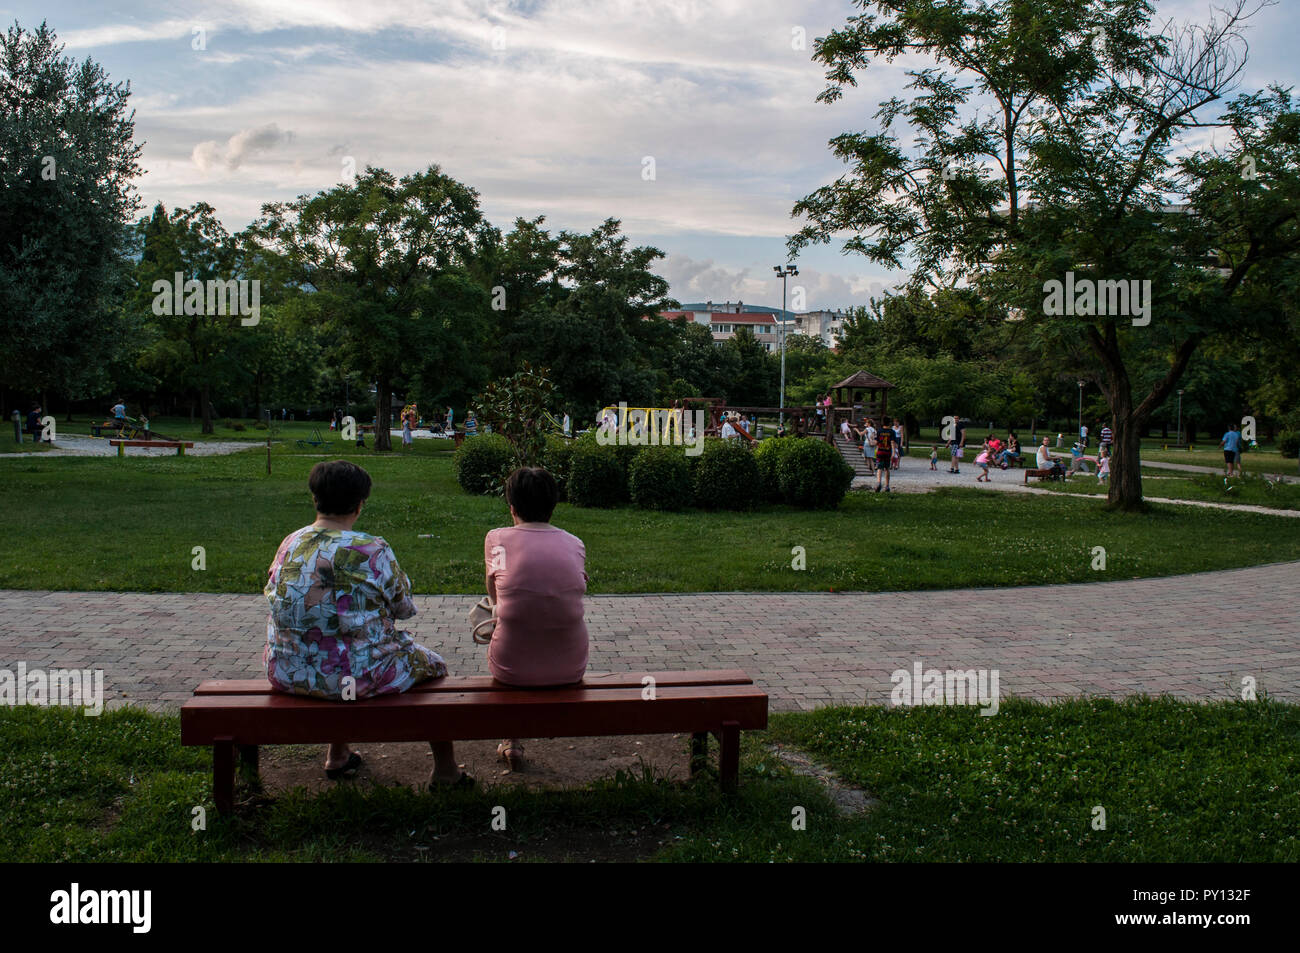 Mostar: Bosnian women talking on a bench and watching the children playing in the Zrinjski City Park, a public park on the western side of the city - Stock Image